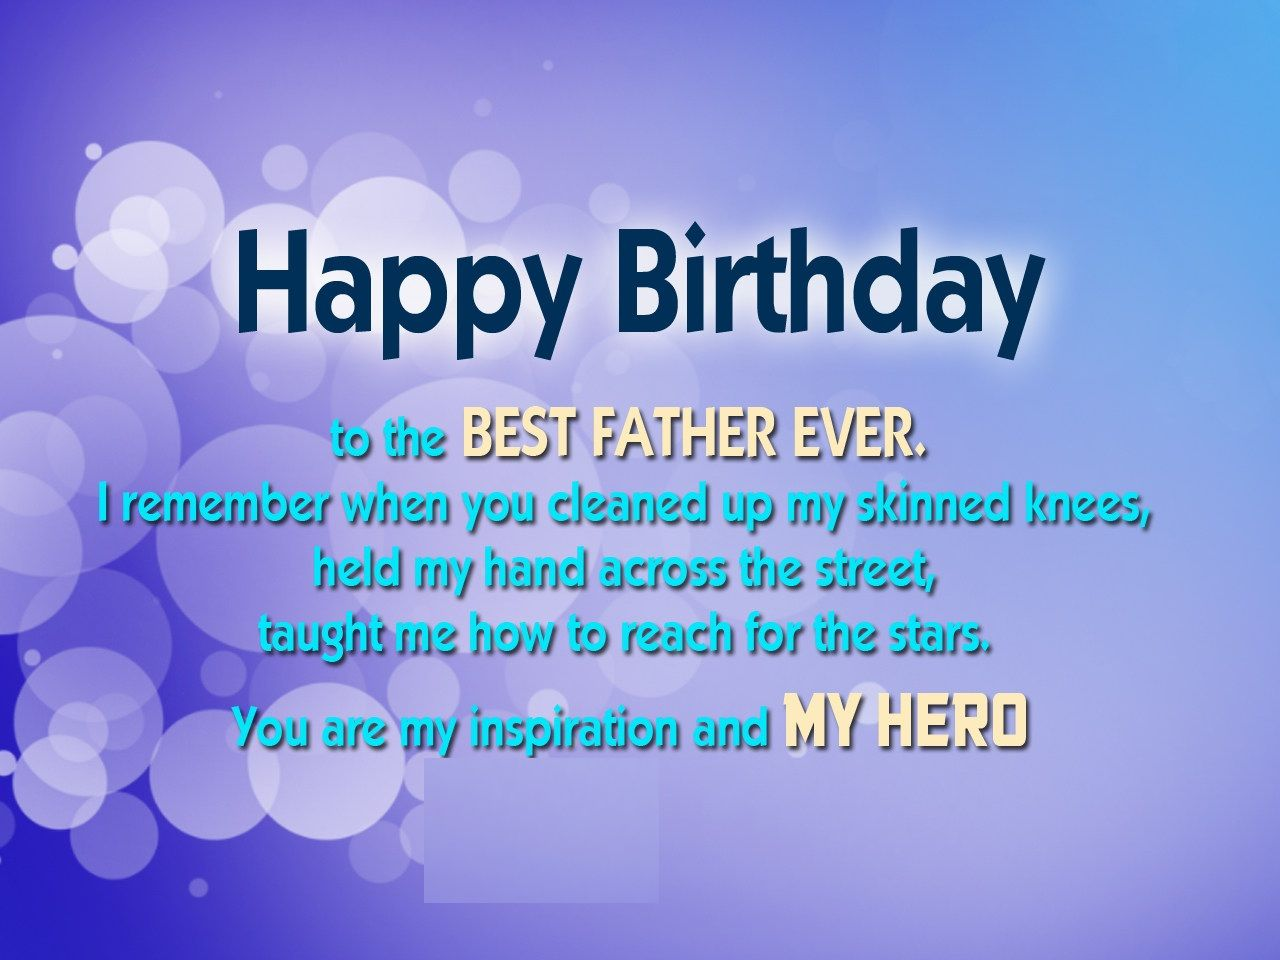 Happy Birthday Father Images Pictures and wallpapers – Happy Birthday Card for Father